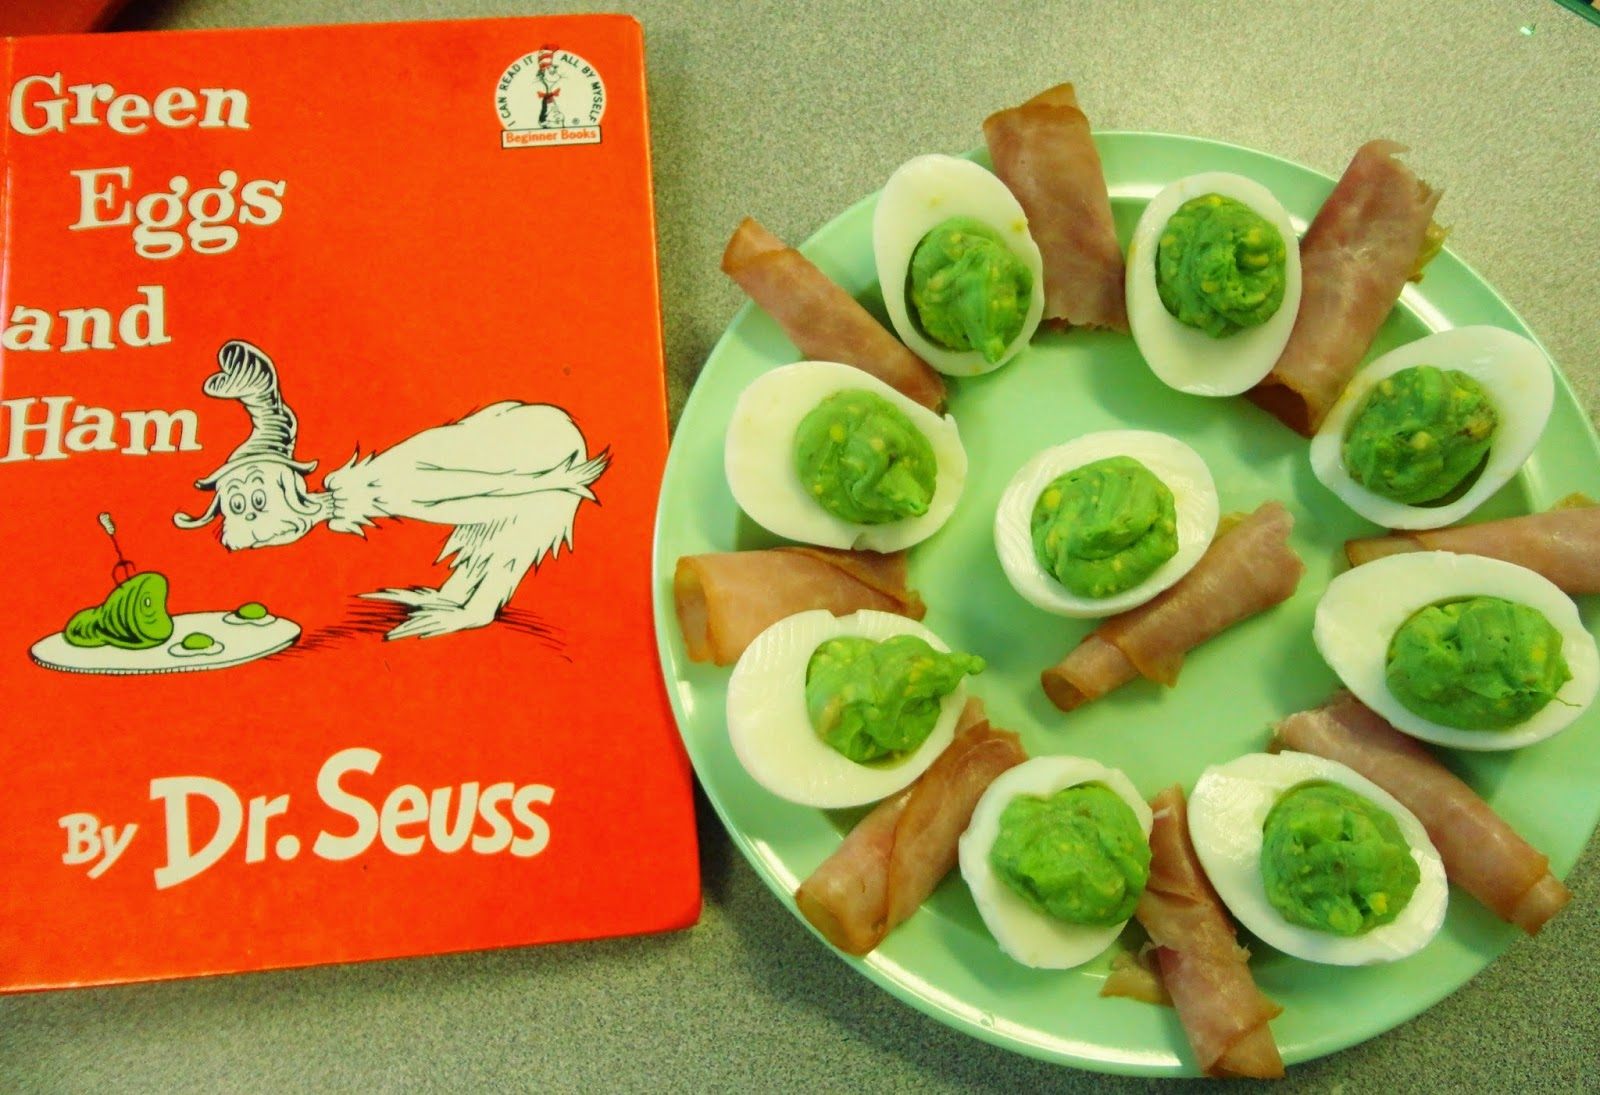 My Catch A Star Classroom Green Eggs And Ham